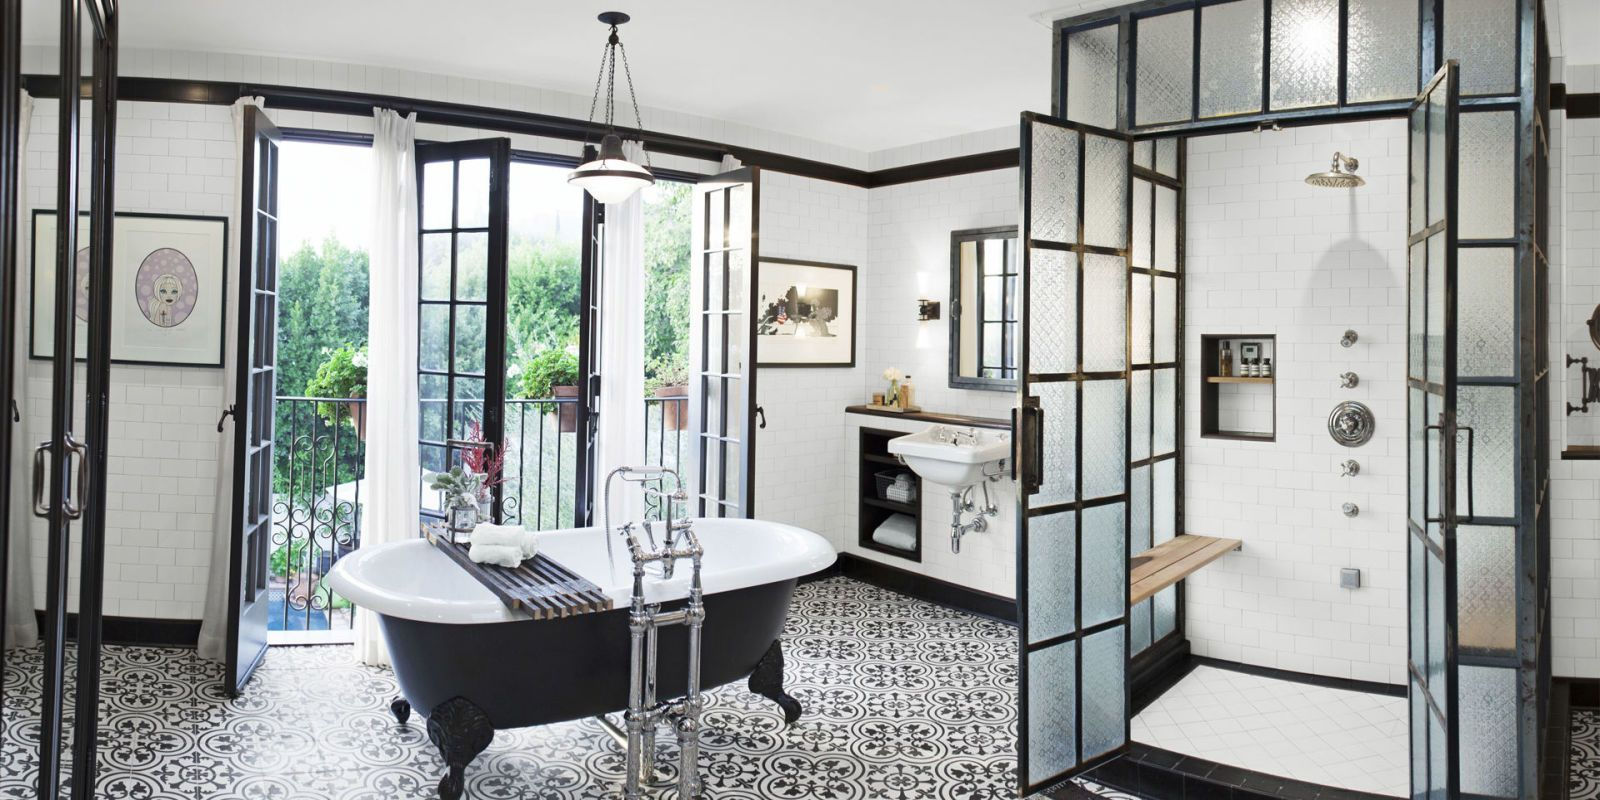 Get ready to take your staycation up to five stars! These 135 tips will make your home bathroom feel like a getaway. http://buff.ly/2kEZQAw